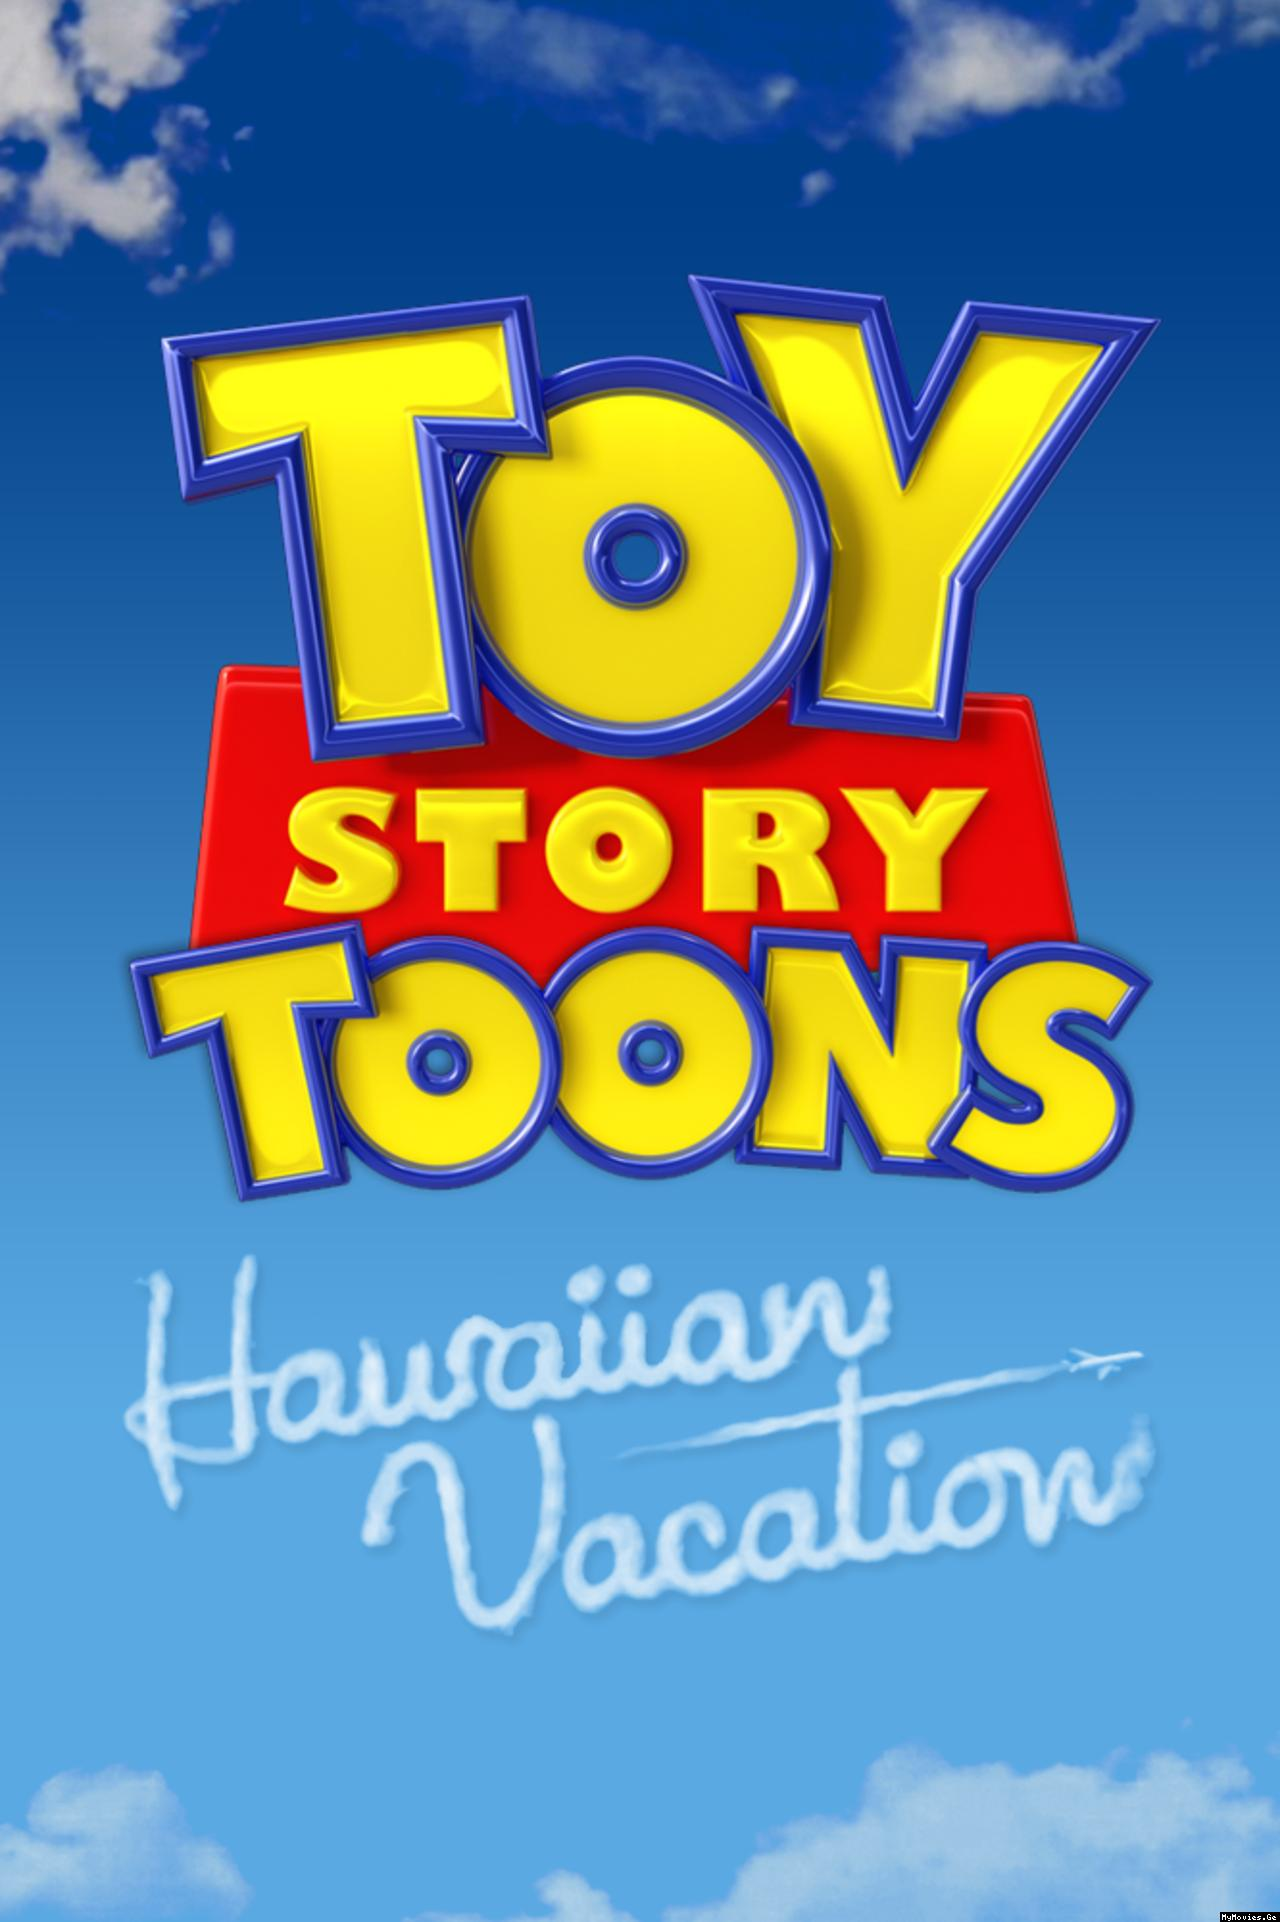 Pixar disney Toy Story Toons : Vacances à Hawaï hawaiian vacation affiche poster